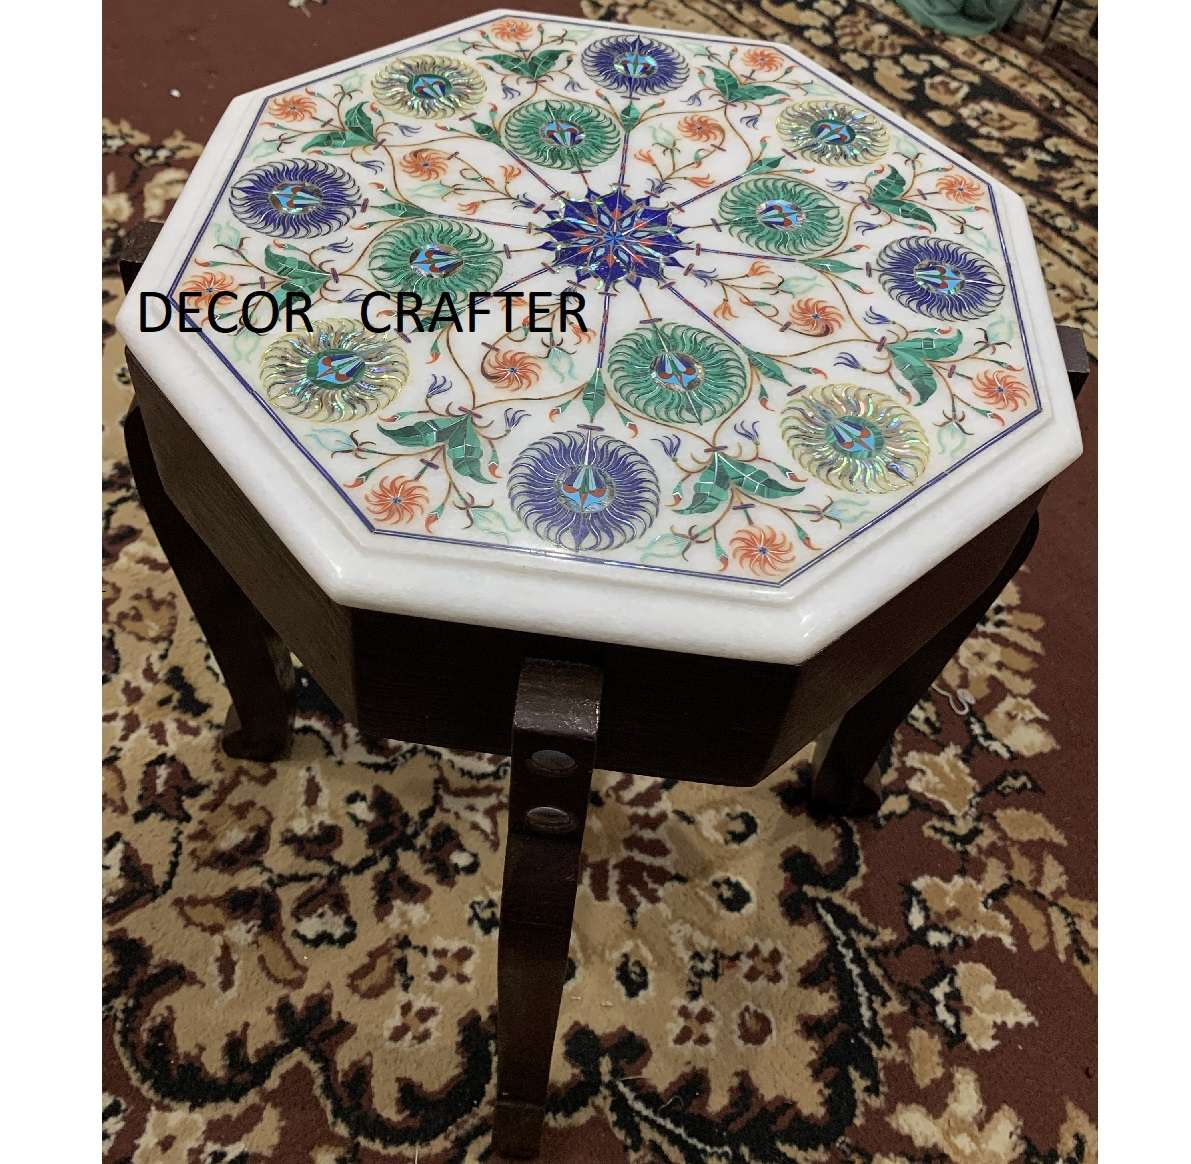 White Marble Tabletop Having Very Fine And Most Difficult Inlay Work